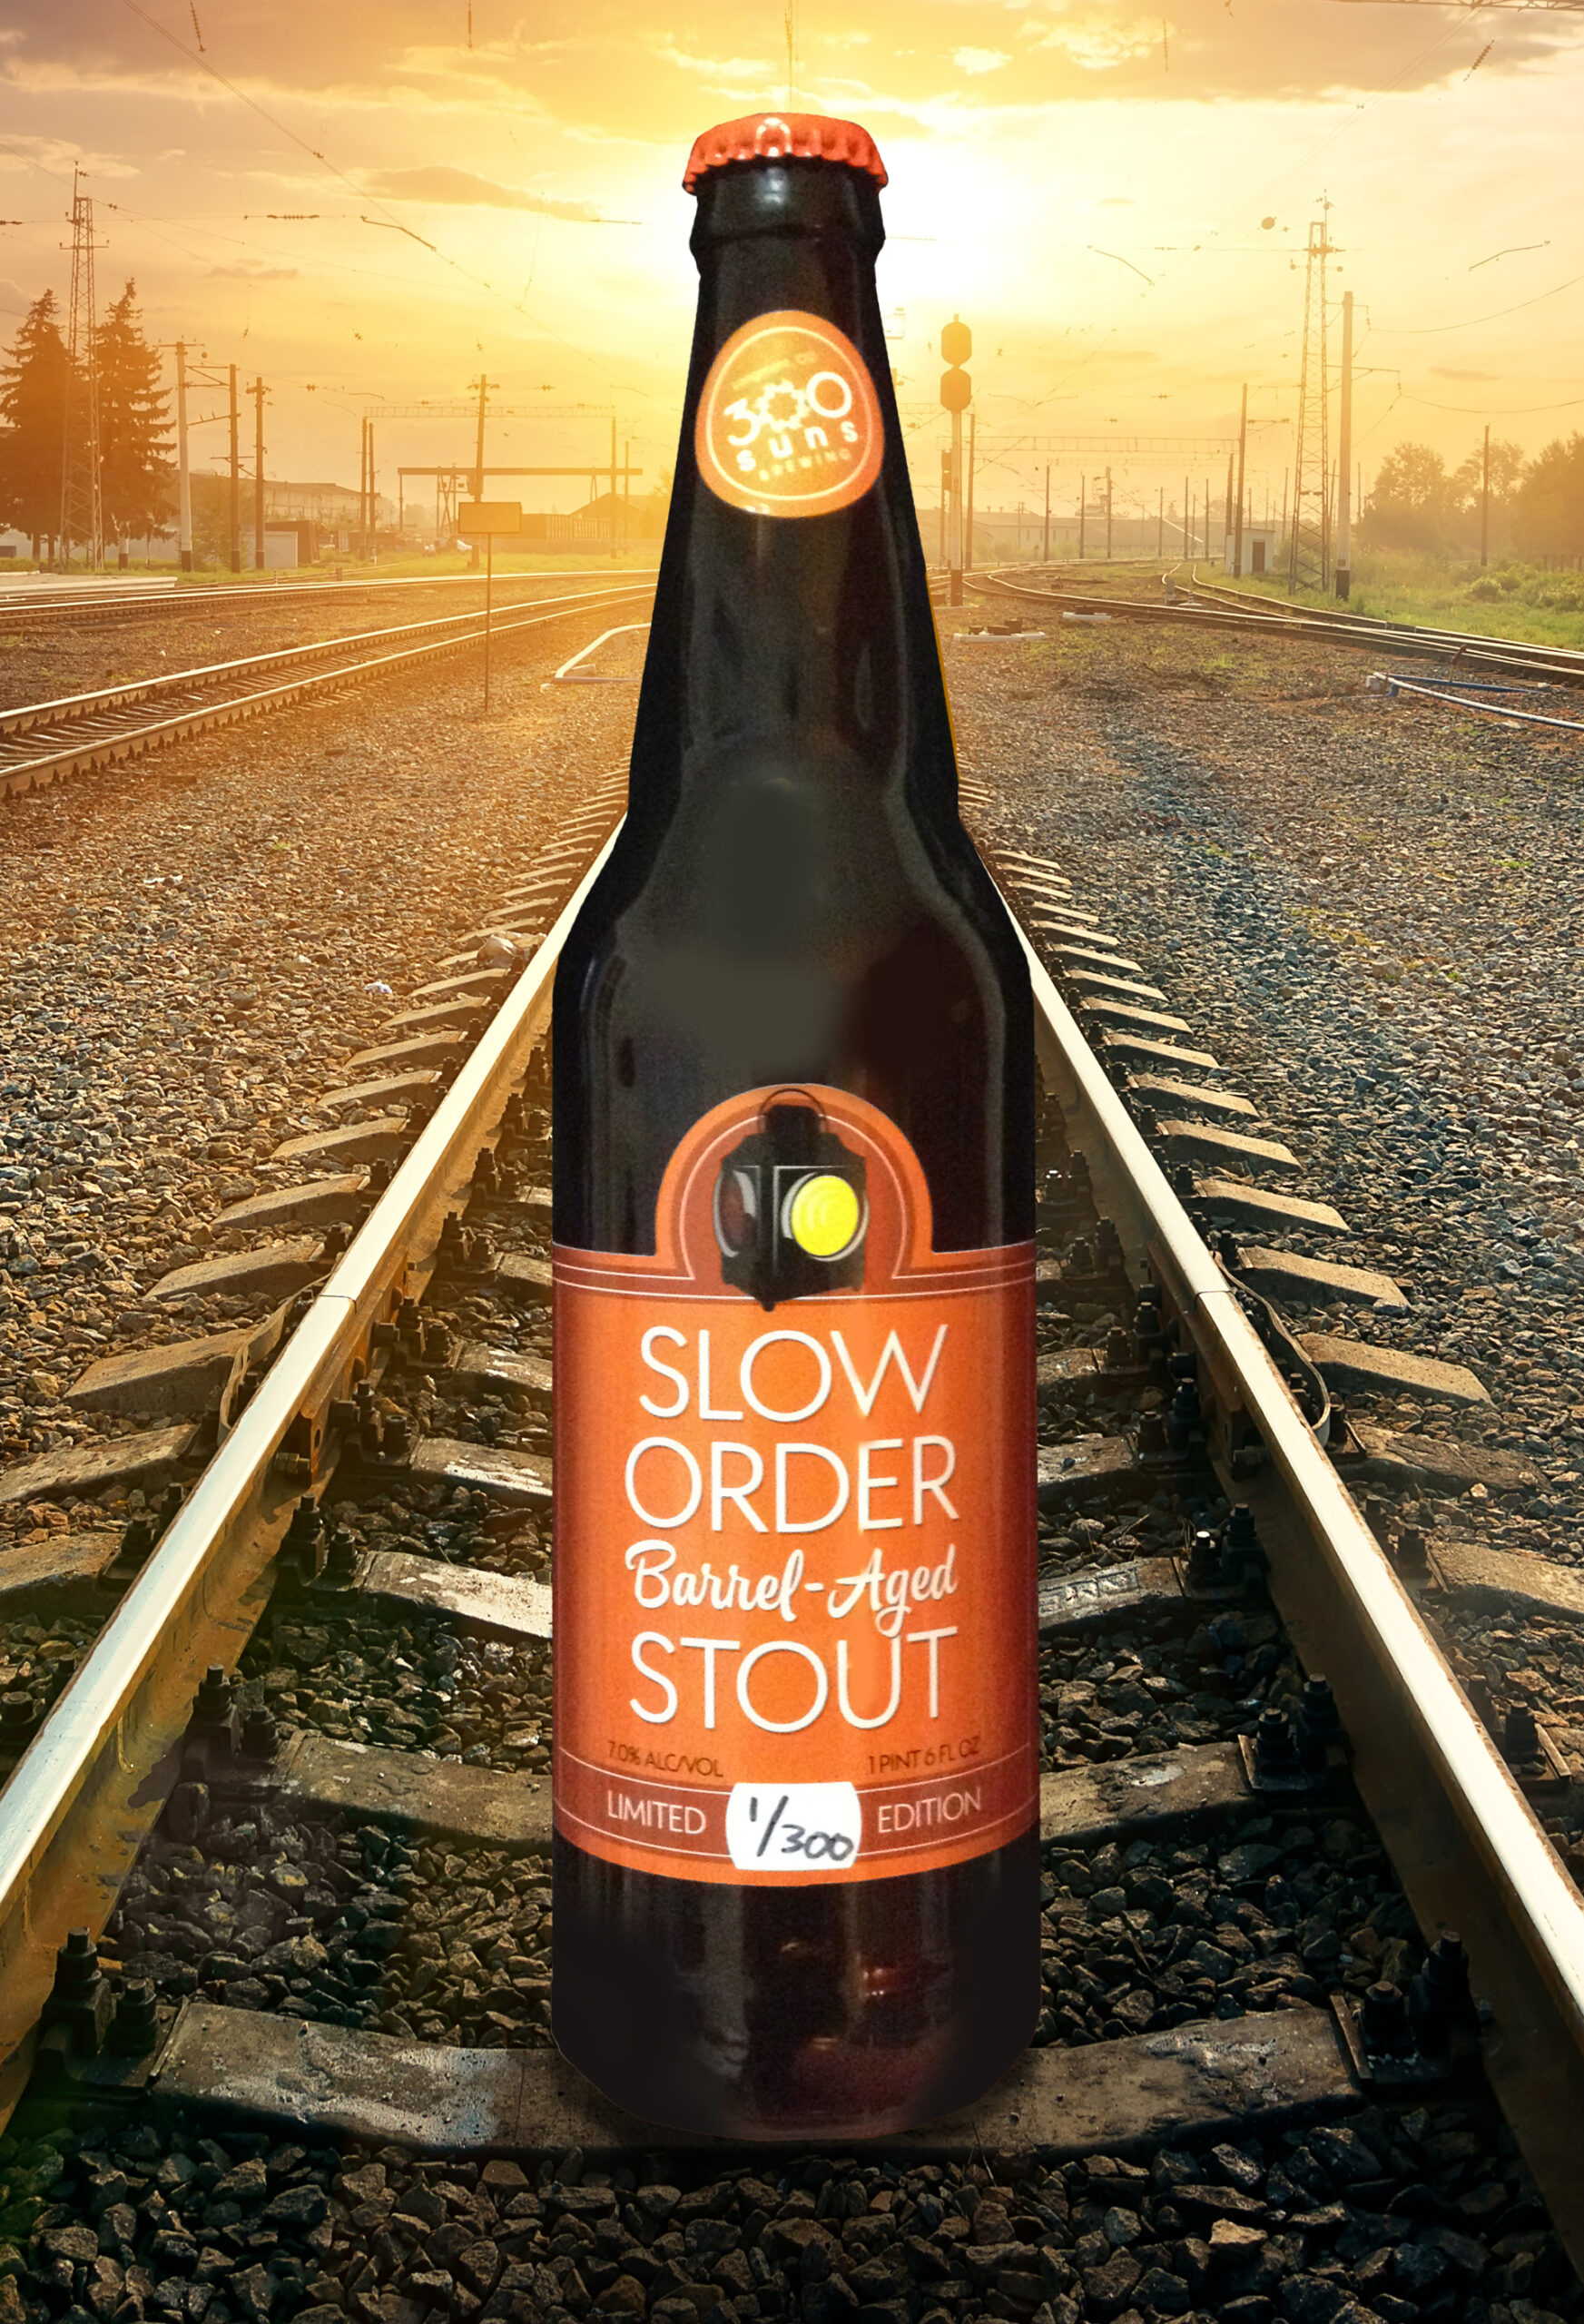 300 Suns Brewing Slow Order Barrel-Aged Stout